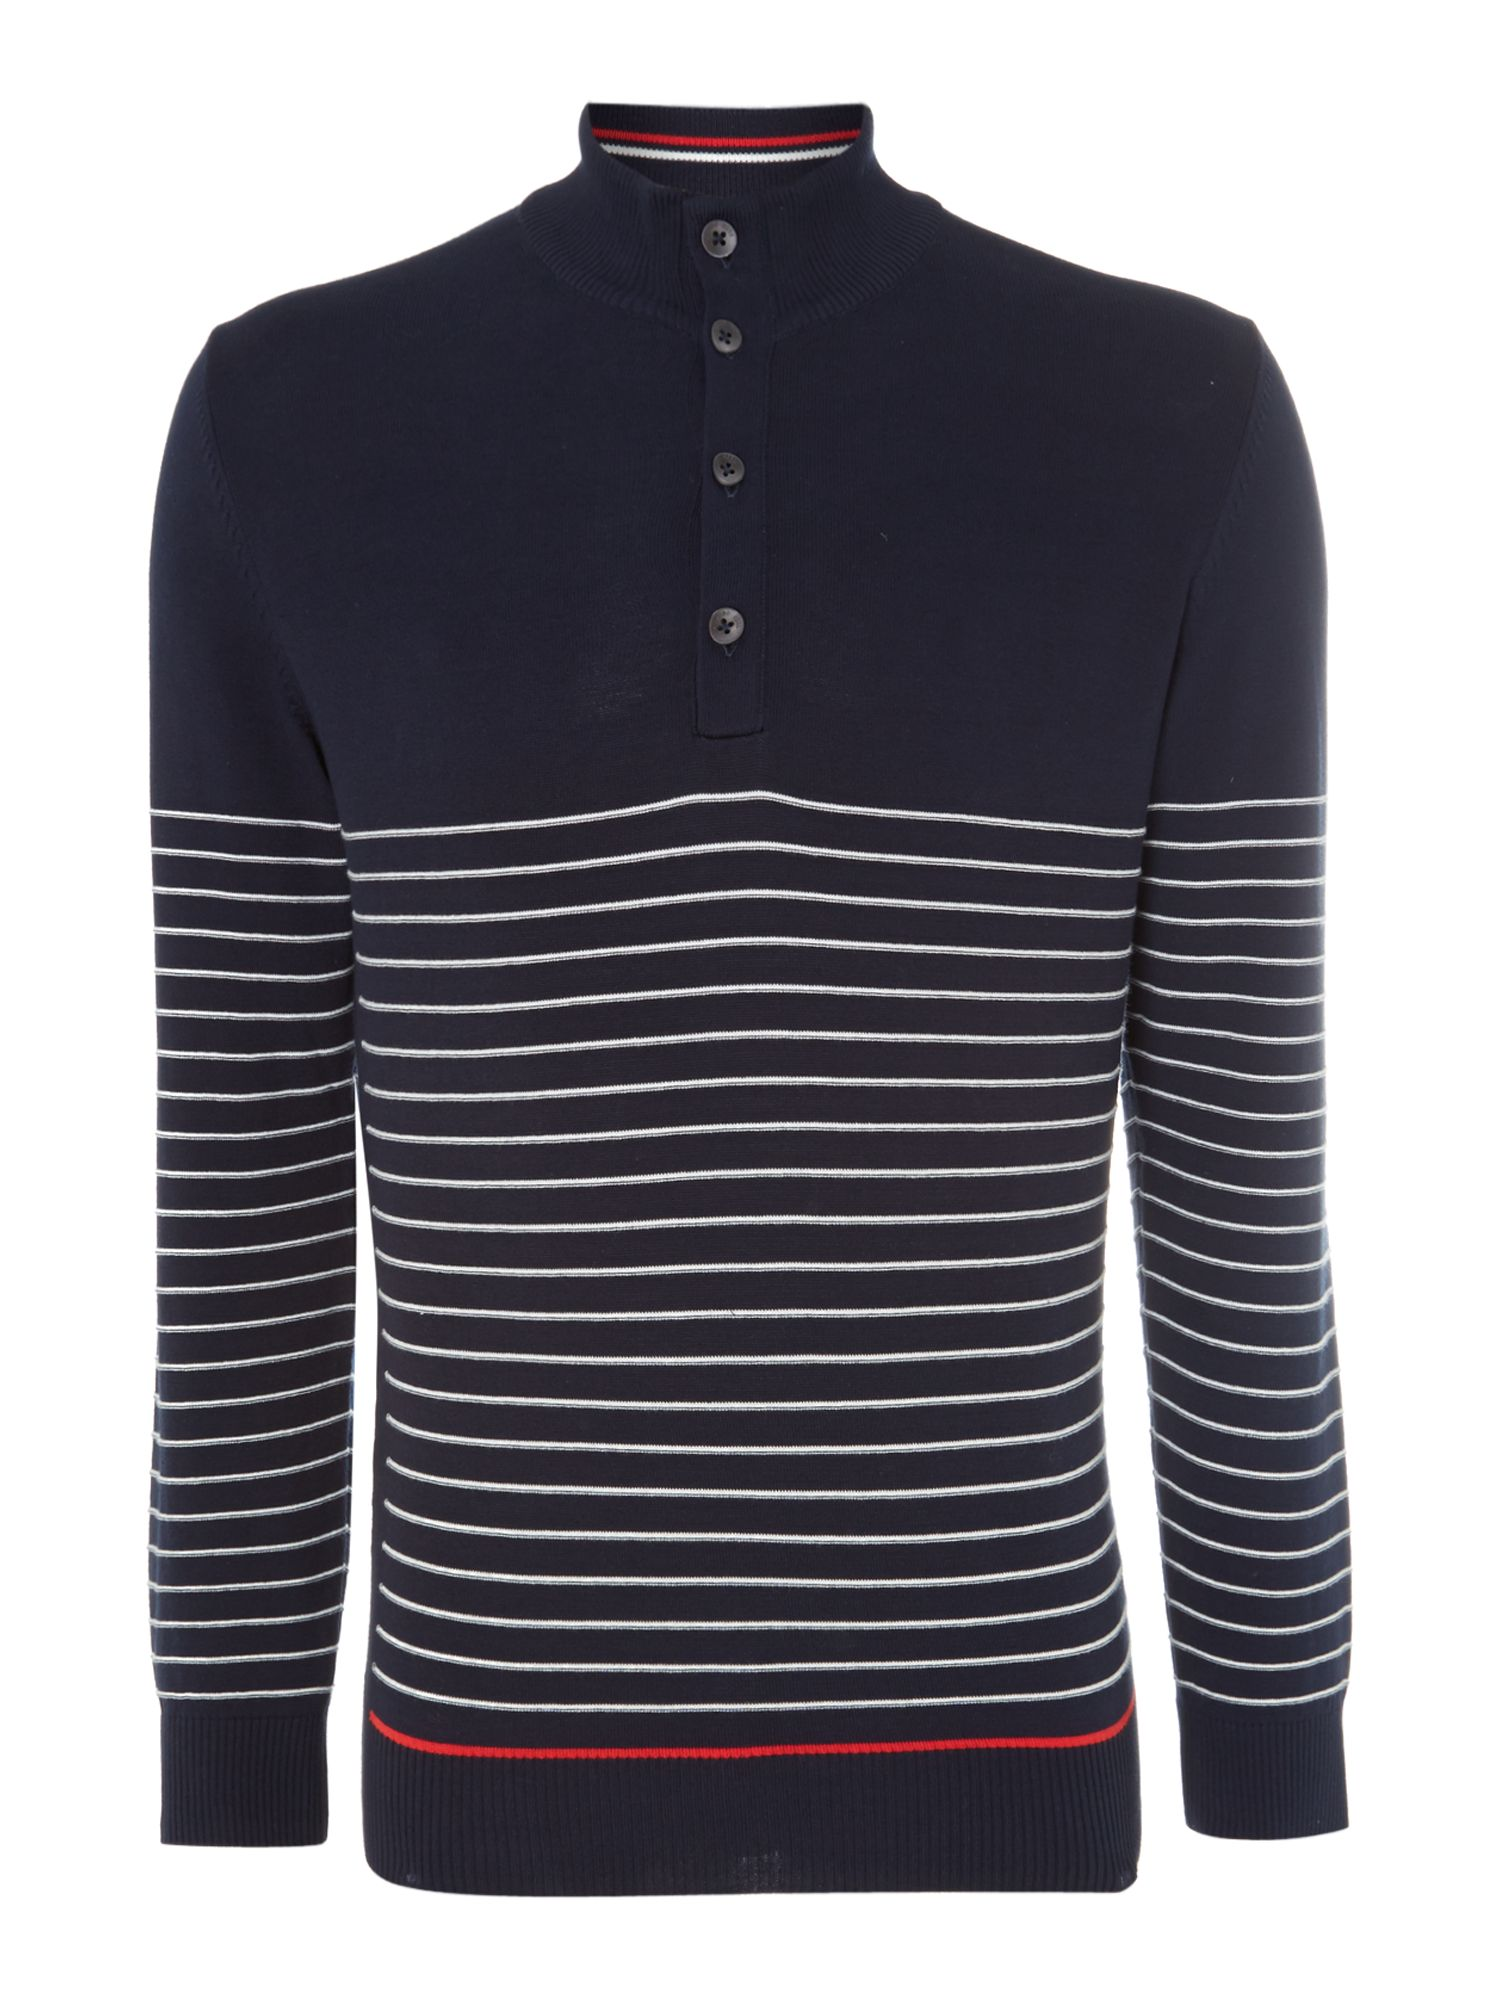 Half zip stripe knitted sweatshirt